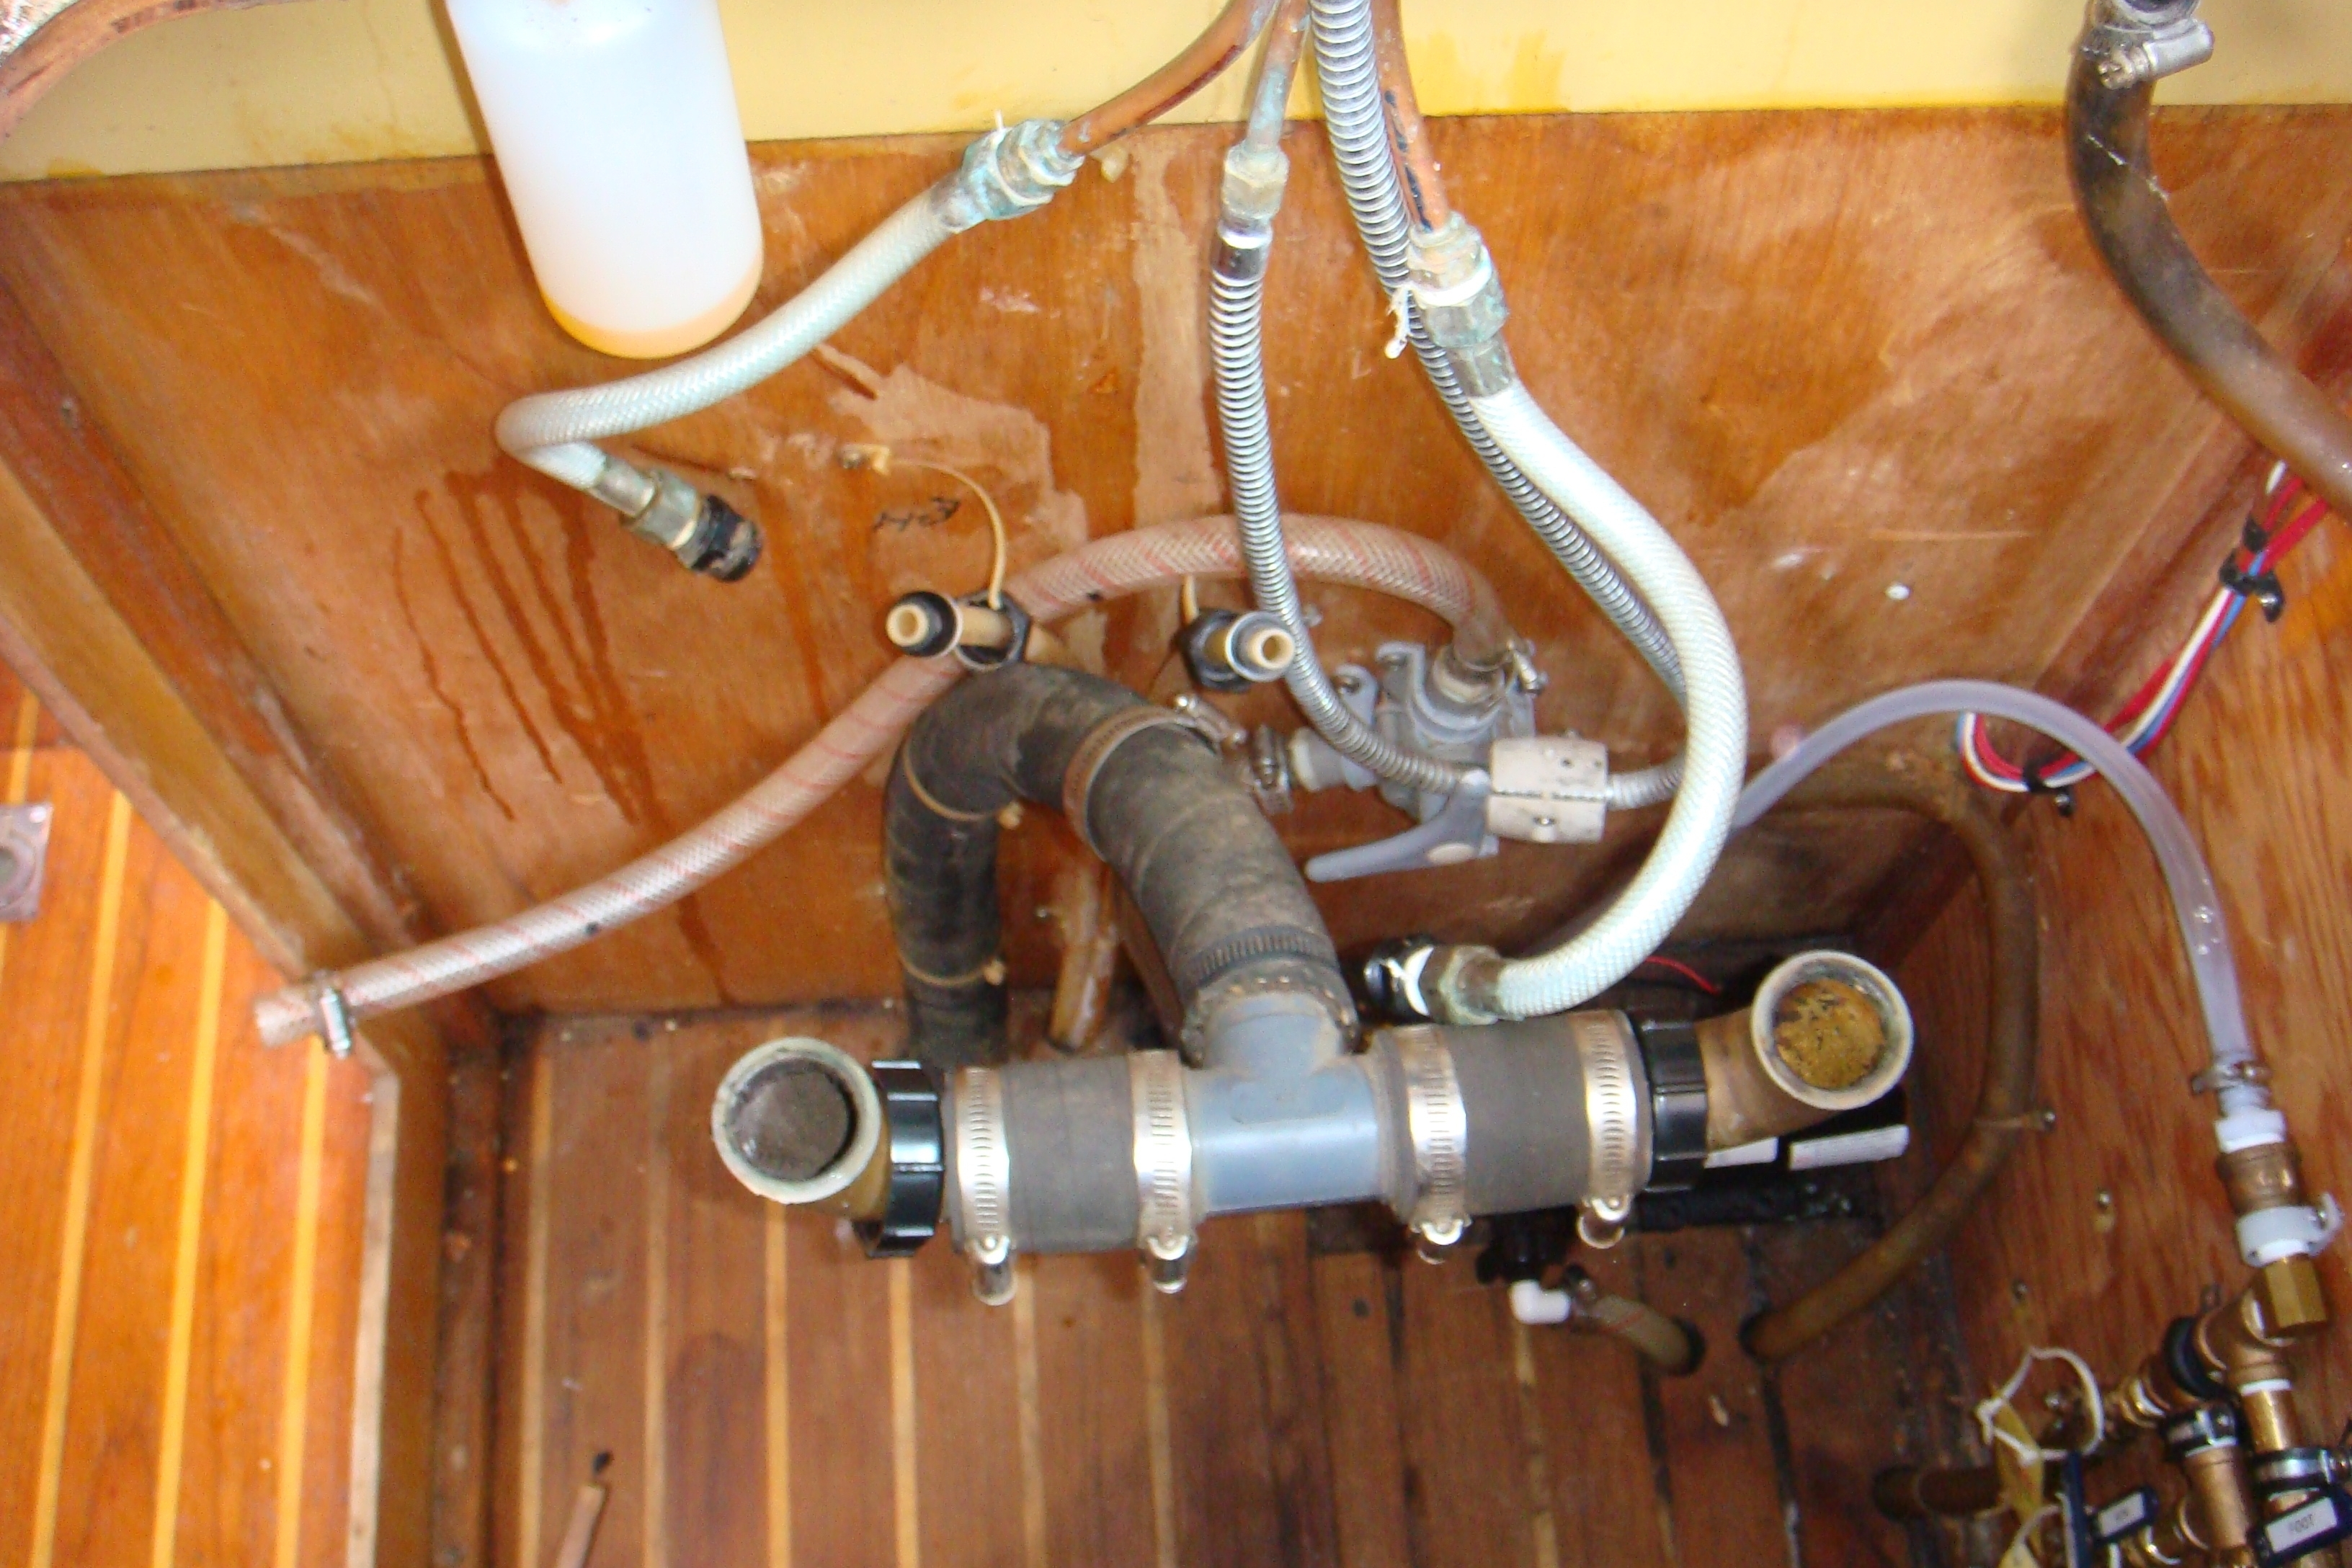 Ideas, faucet supply hose adapter faucet supply hose adapter faucets build an outdoor sink part two connecting the water 3264 x 2176  .